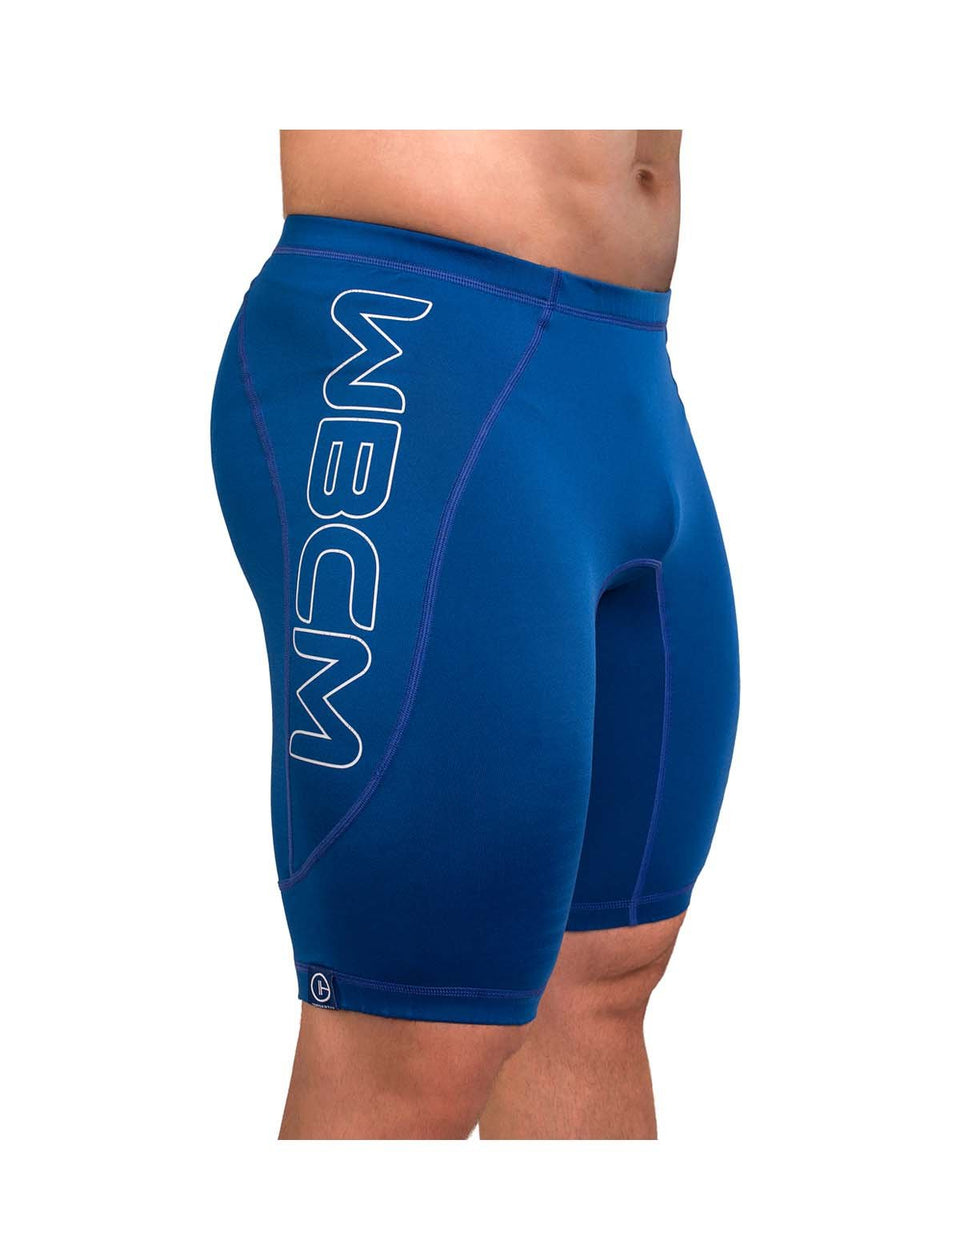 Warm Body Cold Mind Men's Compression Shorts L-3